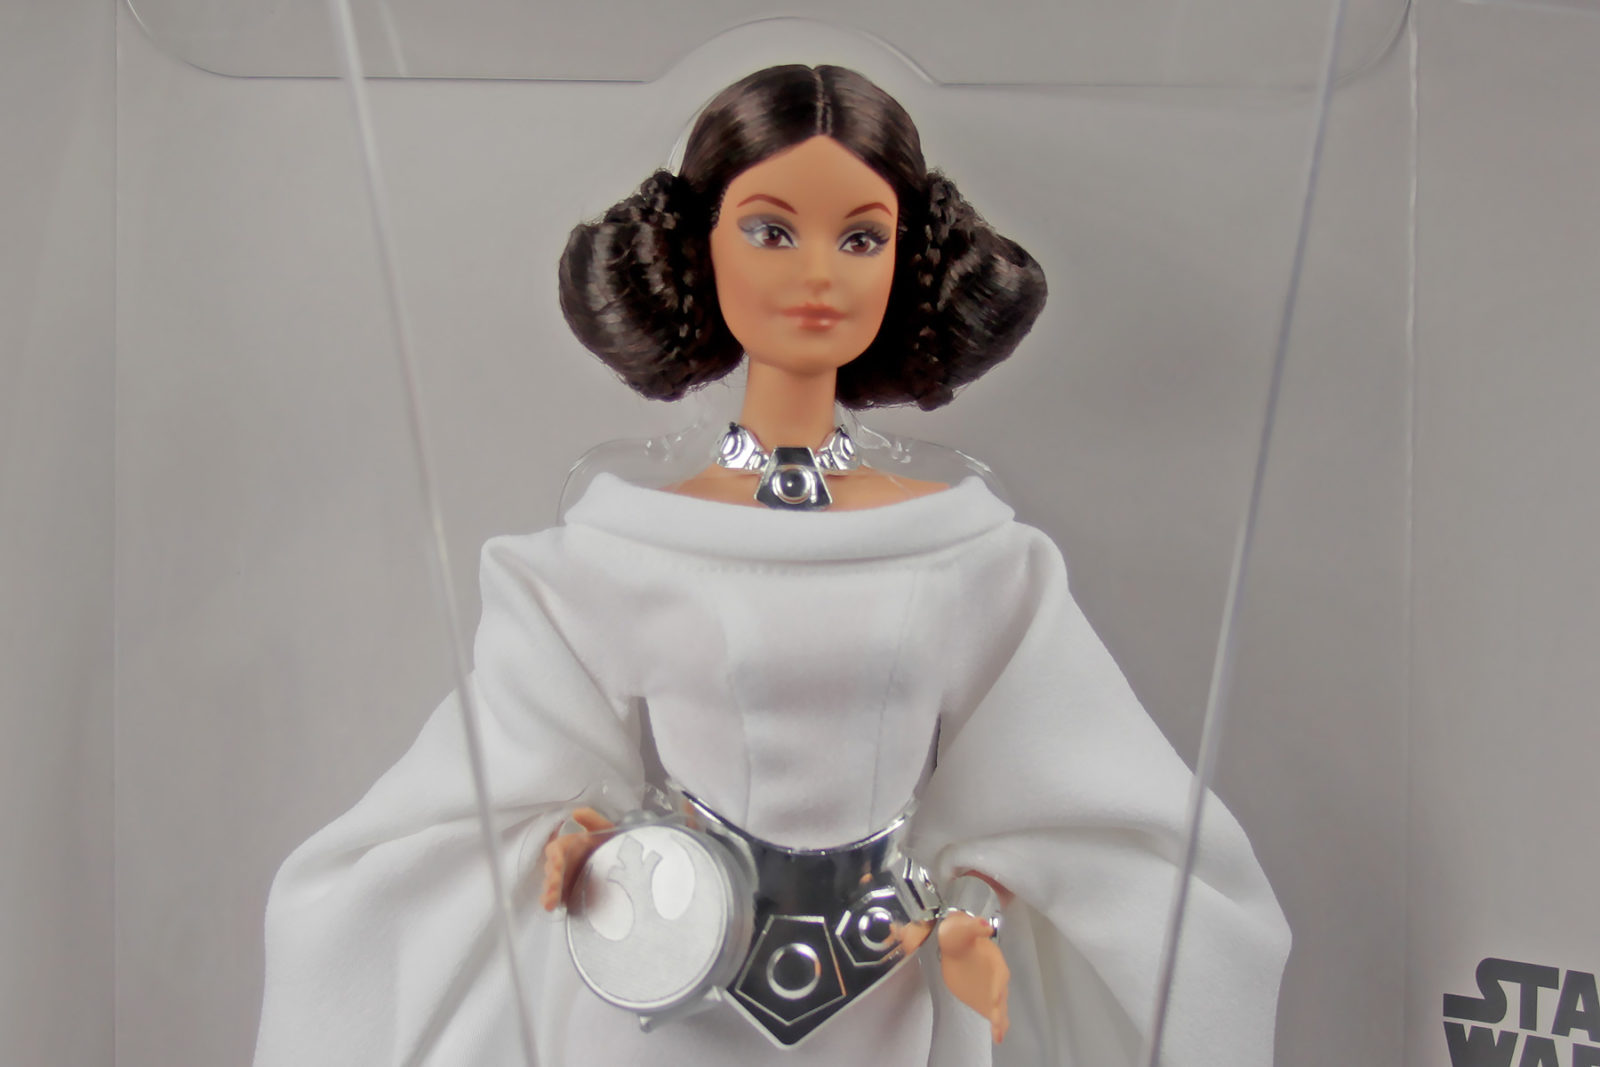 Star Wars x Barbie Dolls